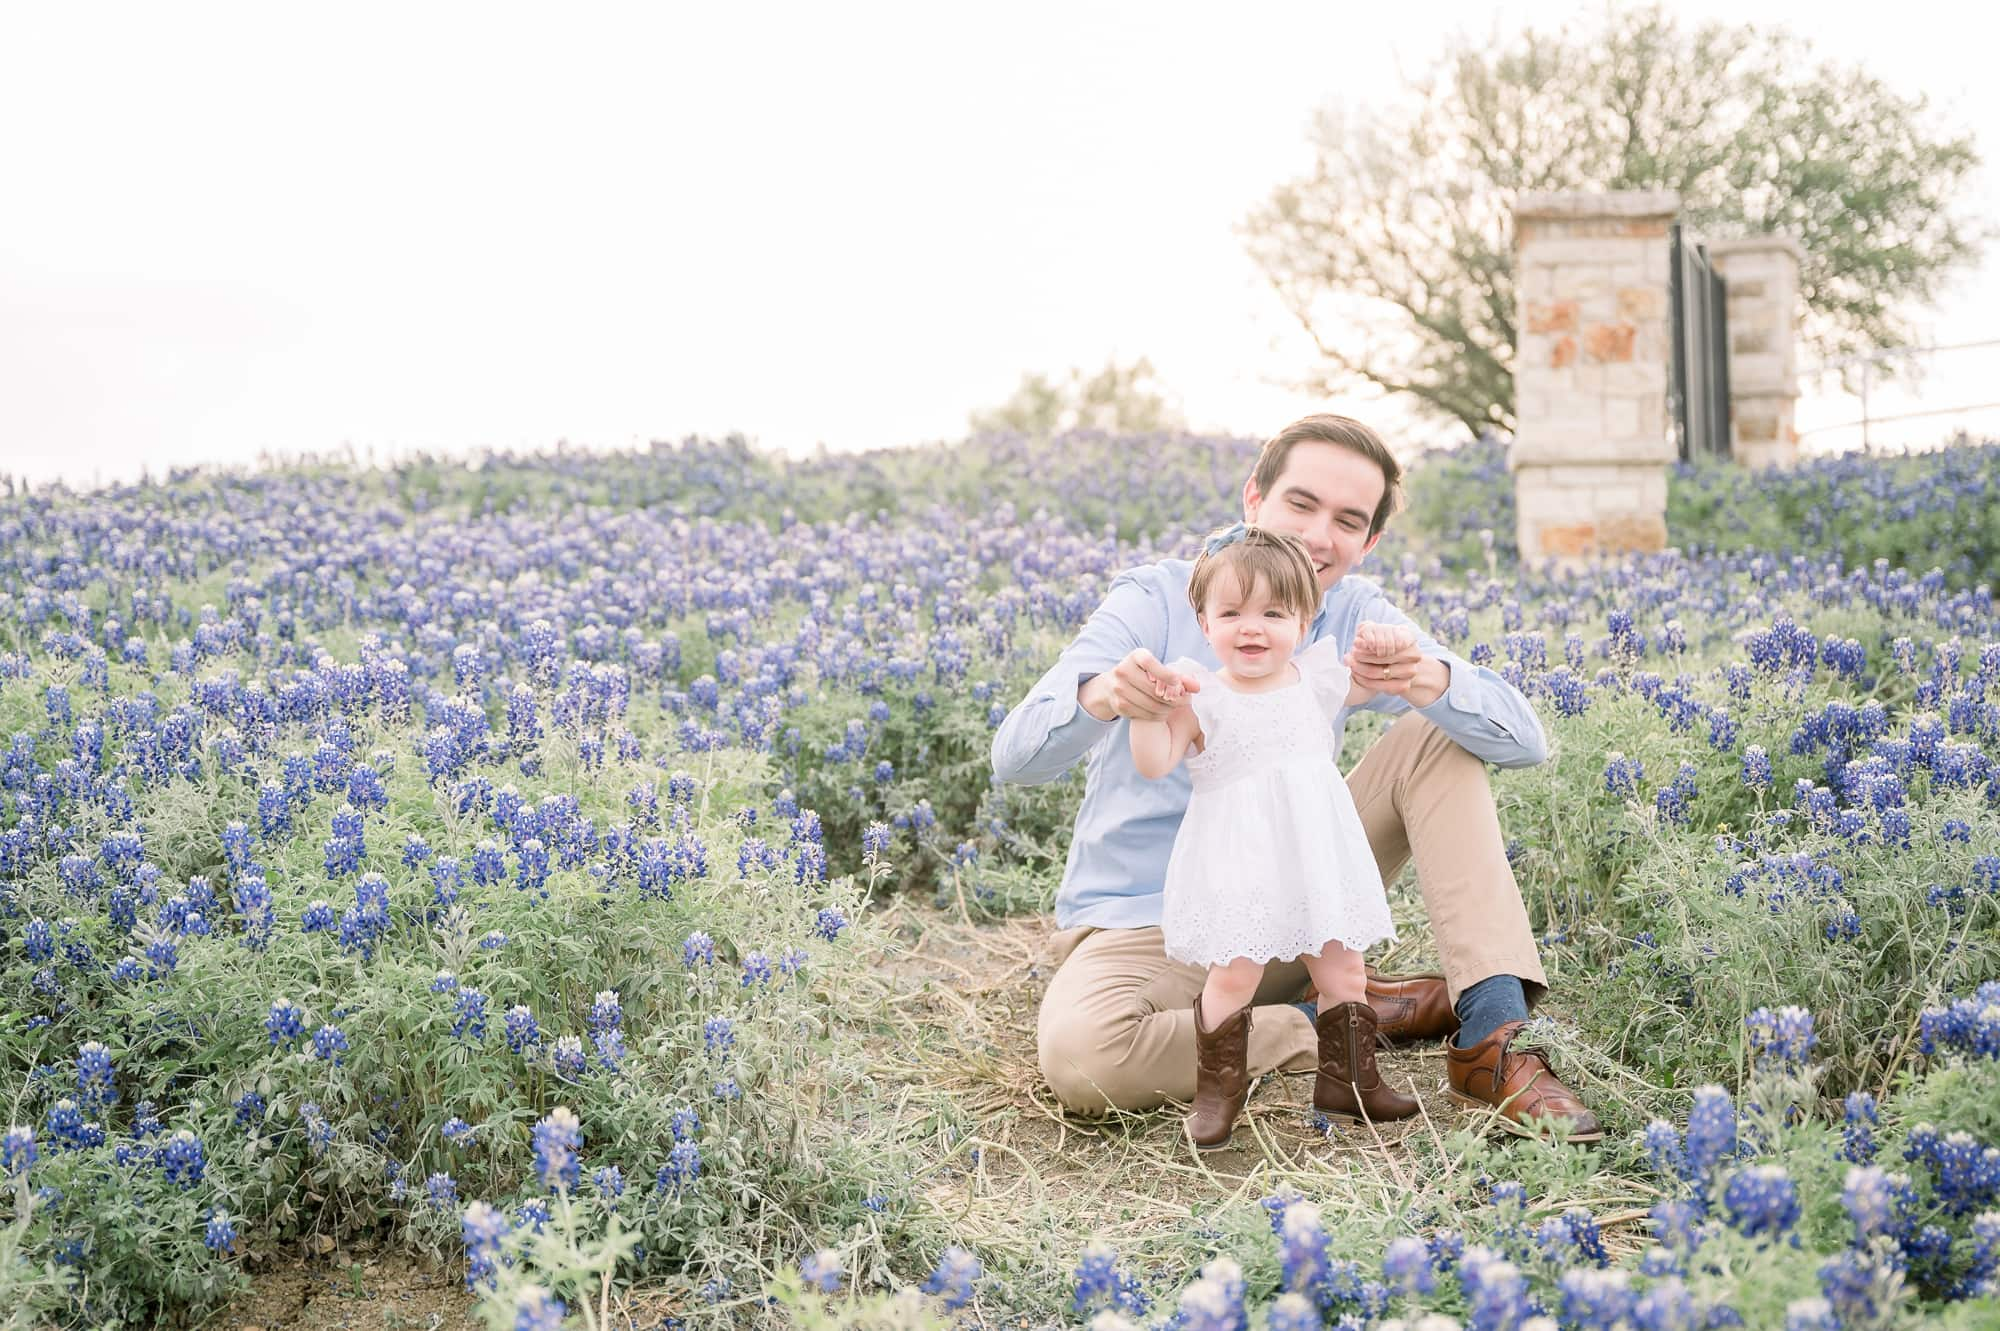 Dad holding baby girl's hands while she stands in bluebonnet field. Photo by Aimee Hamilton Photography.